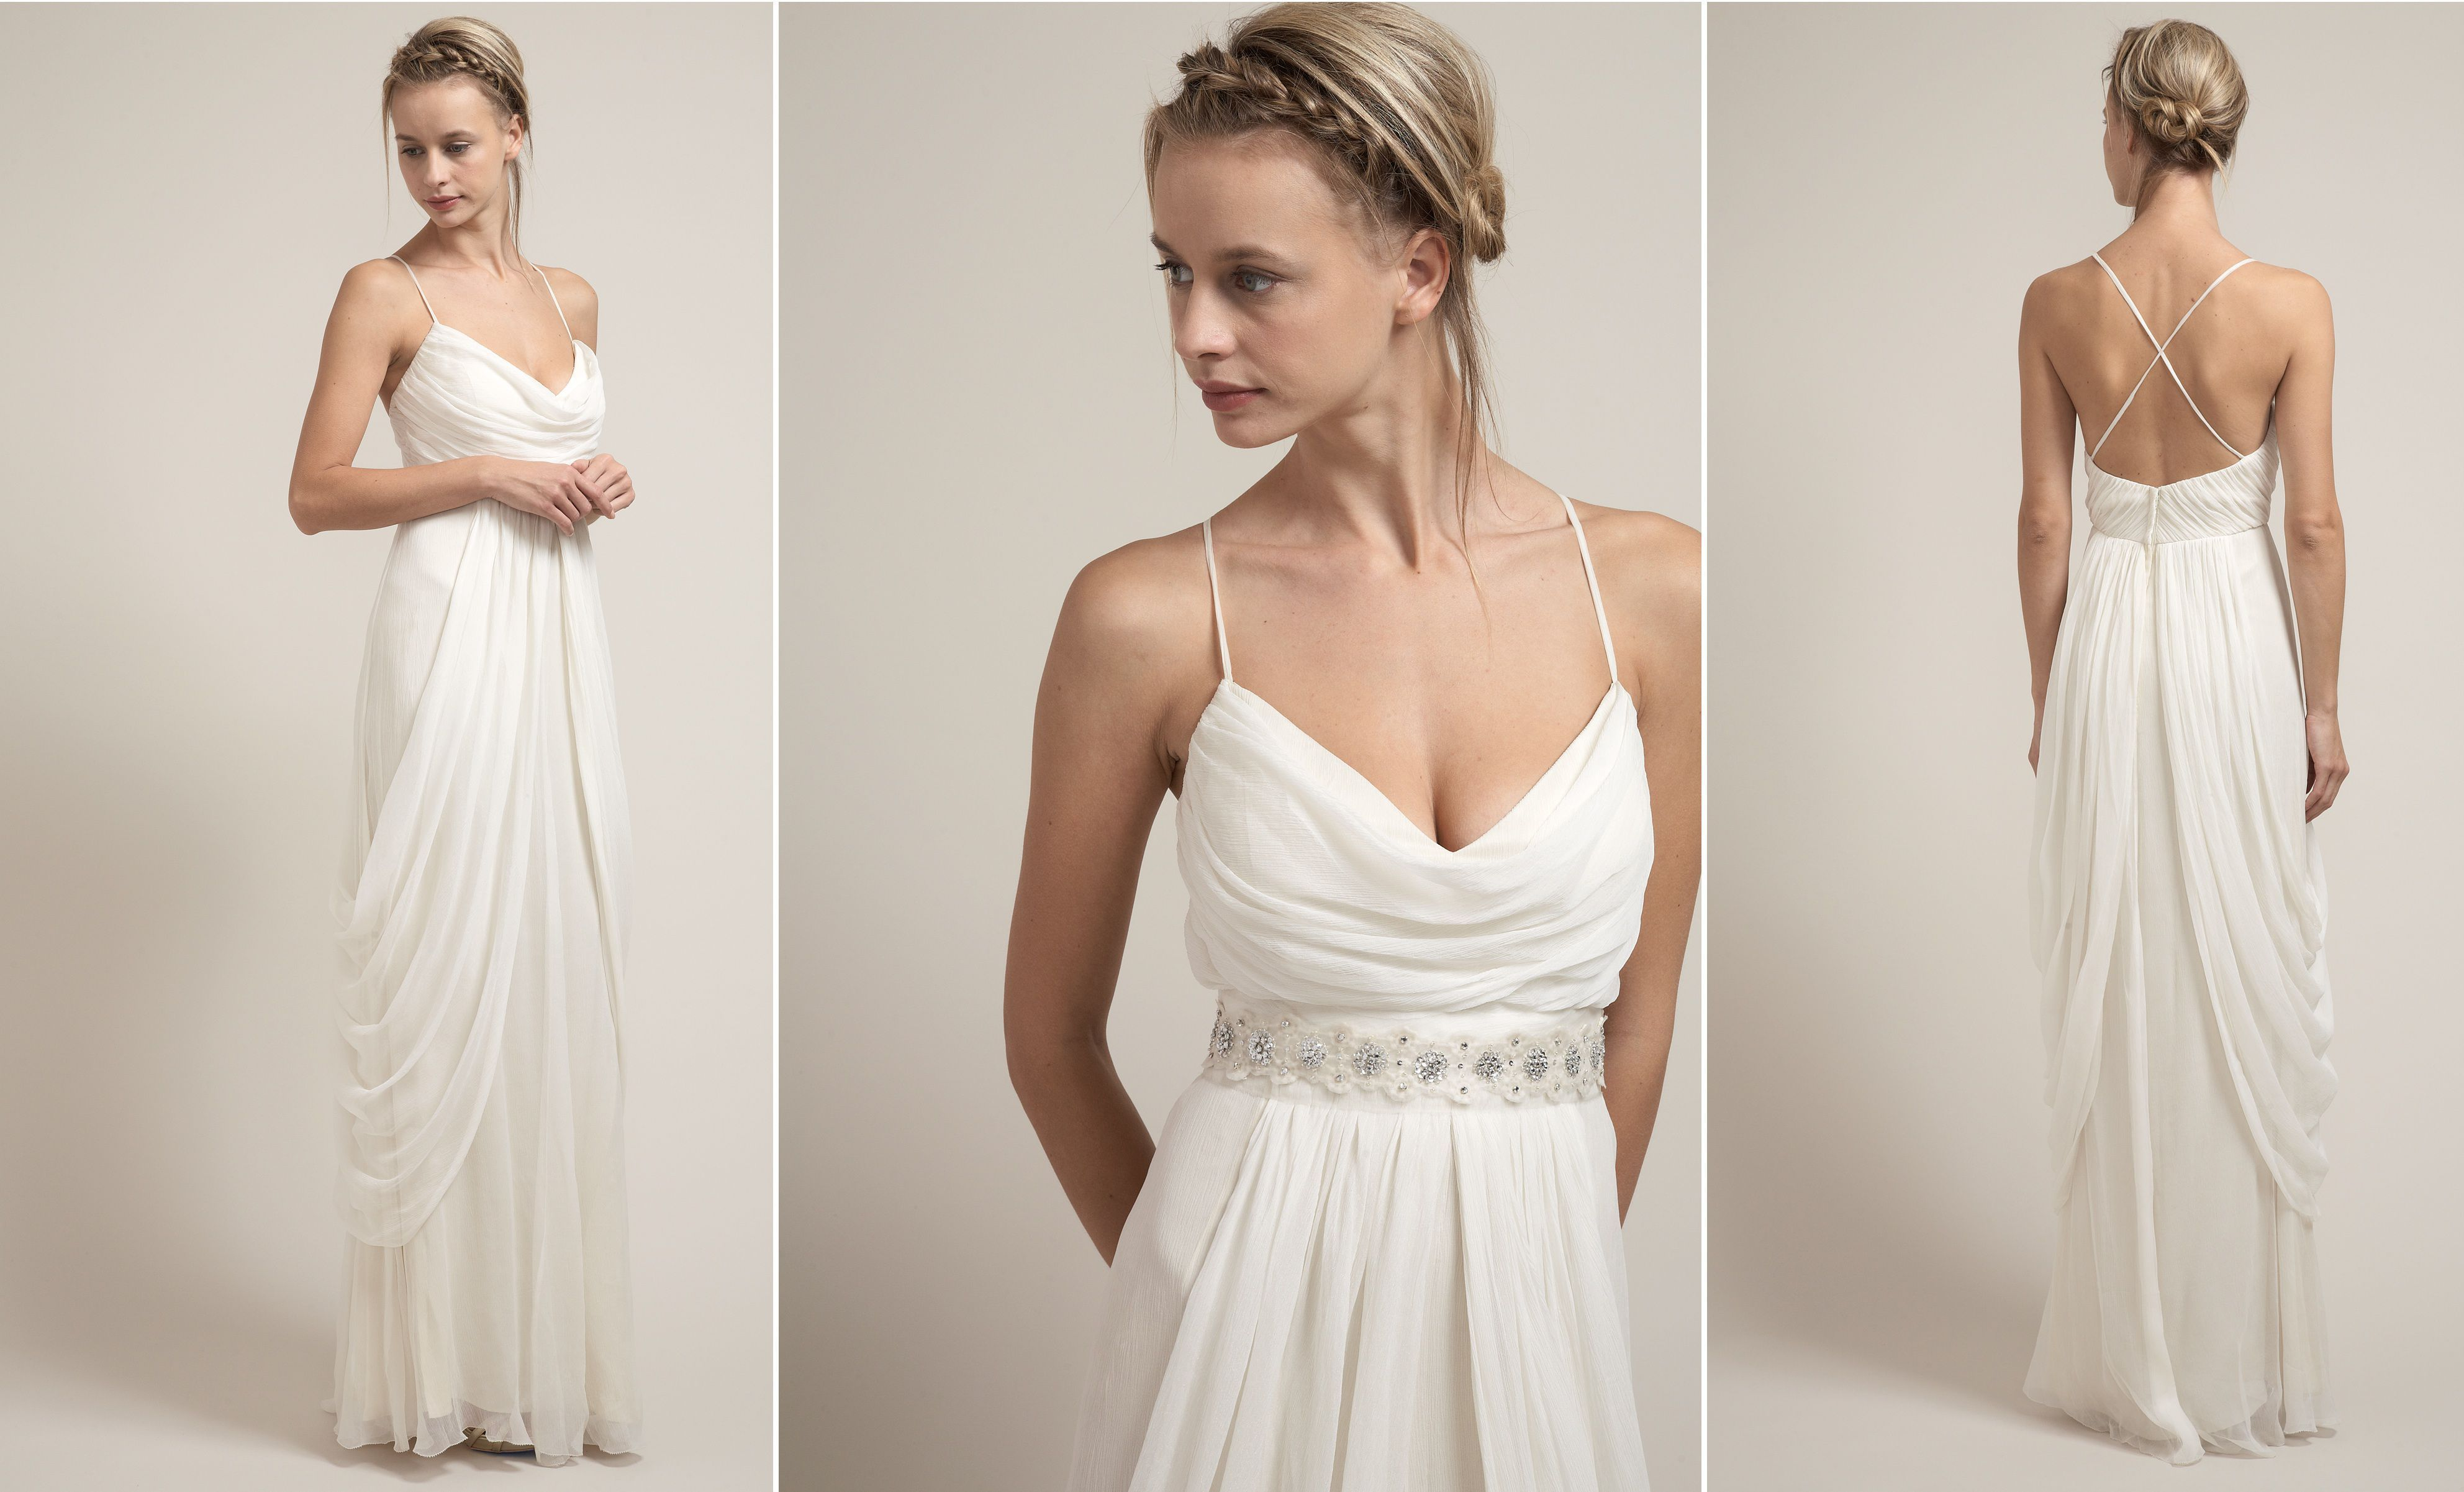 Rustic wedding gowns by saja rustic wedding gowns gowns and